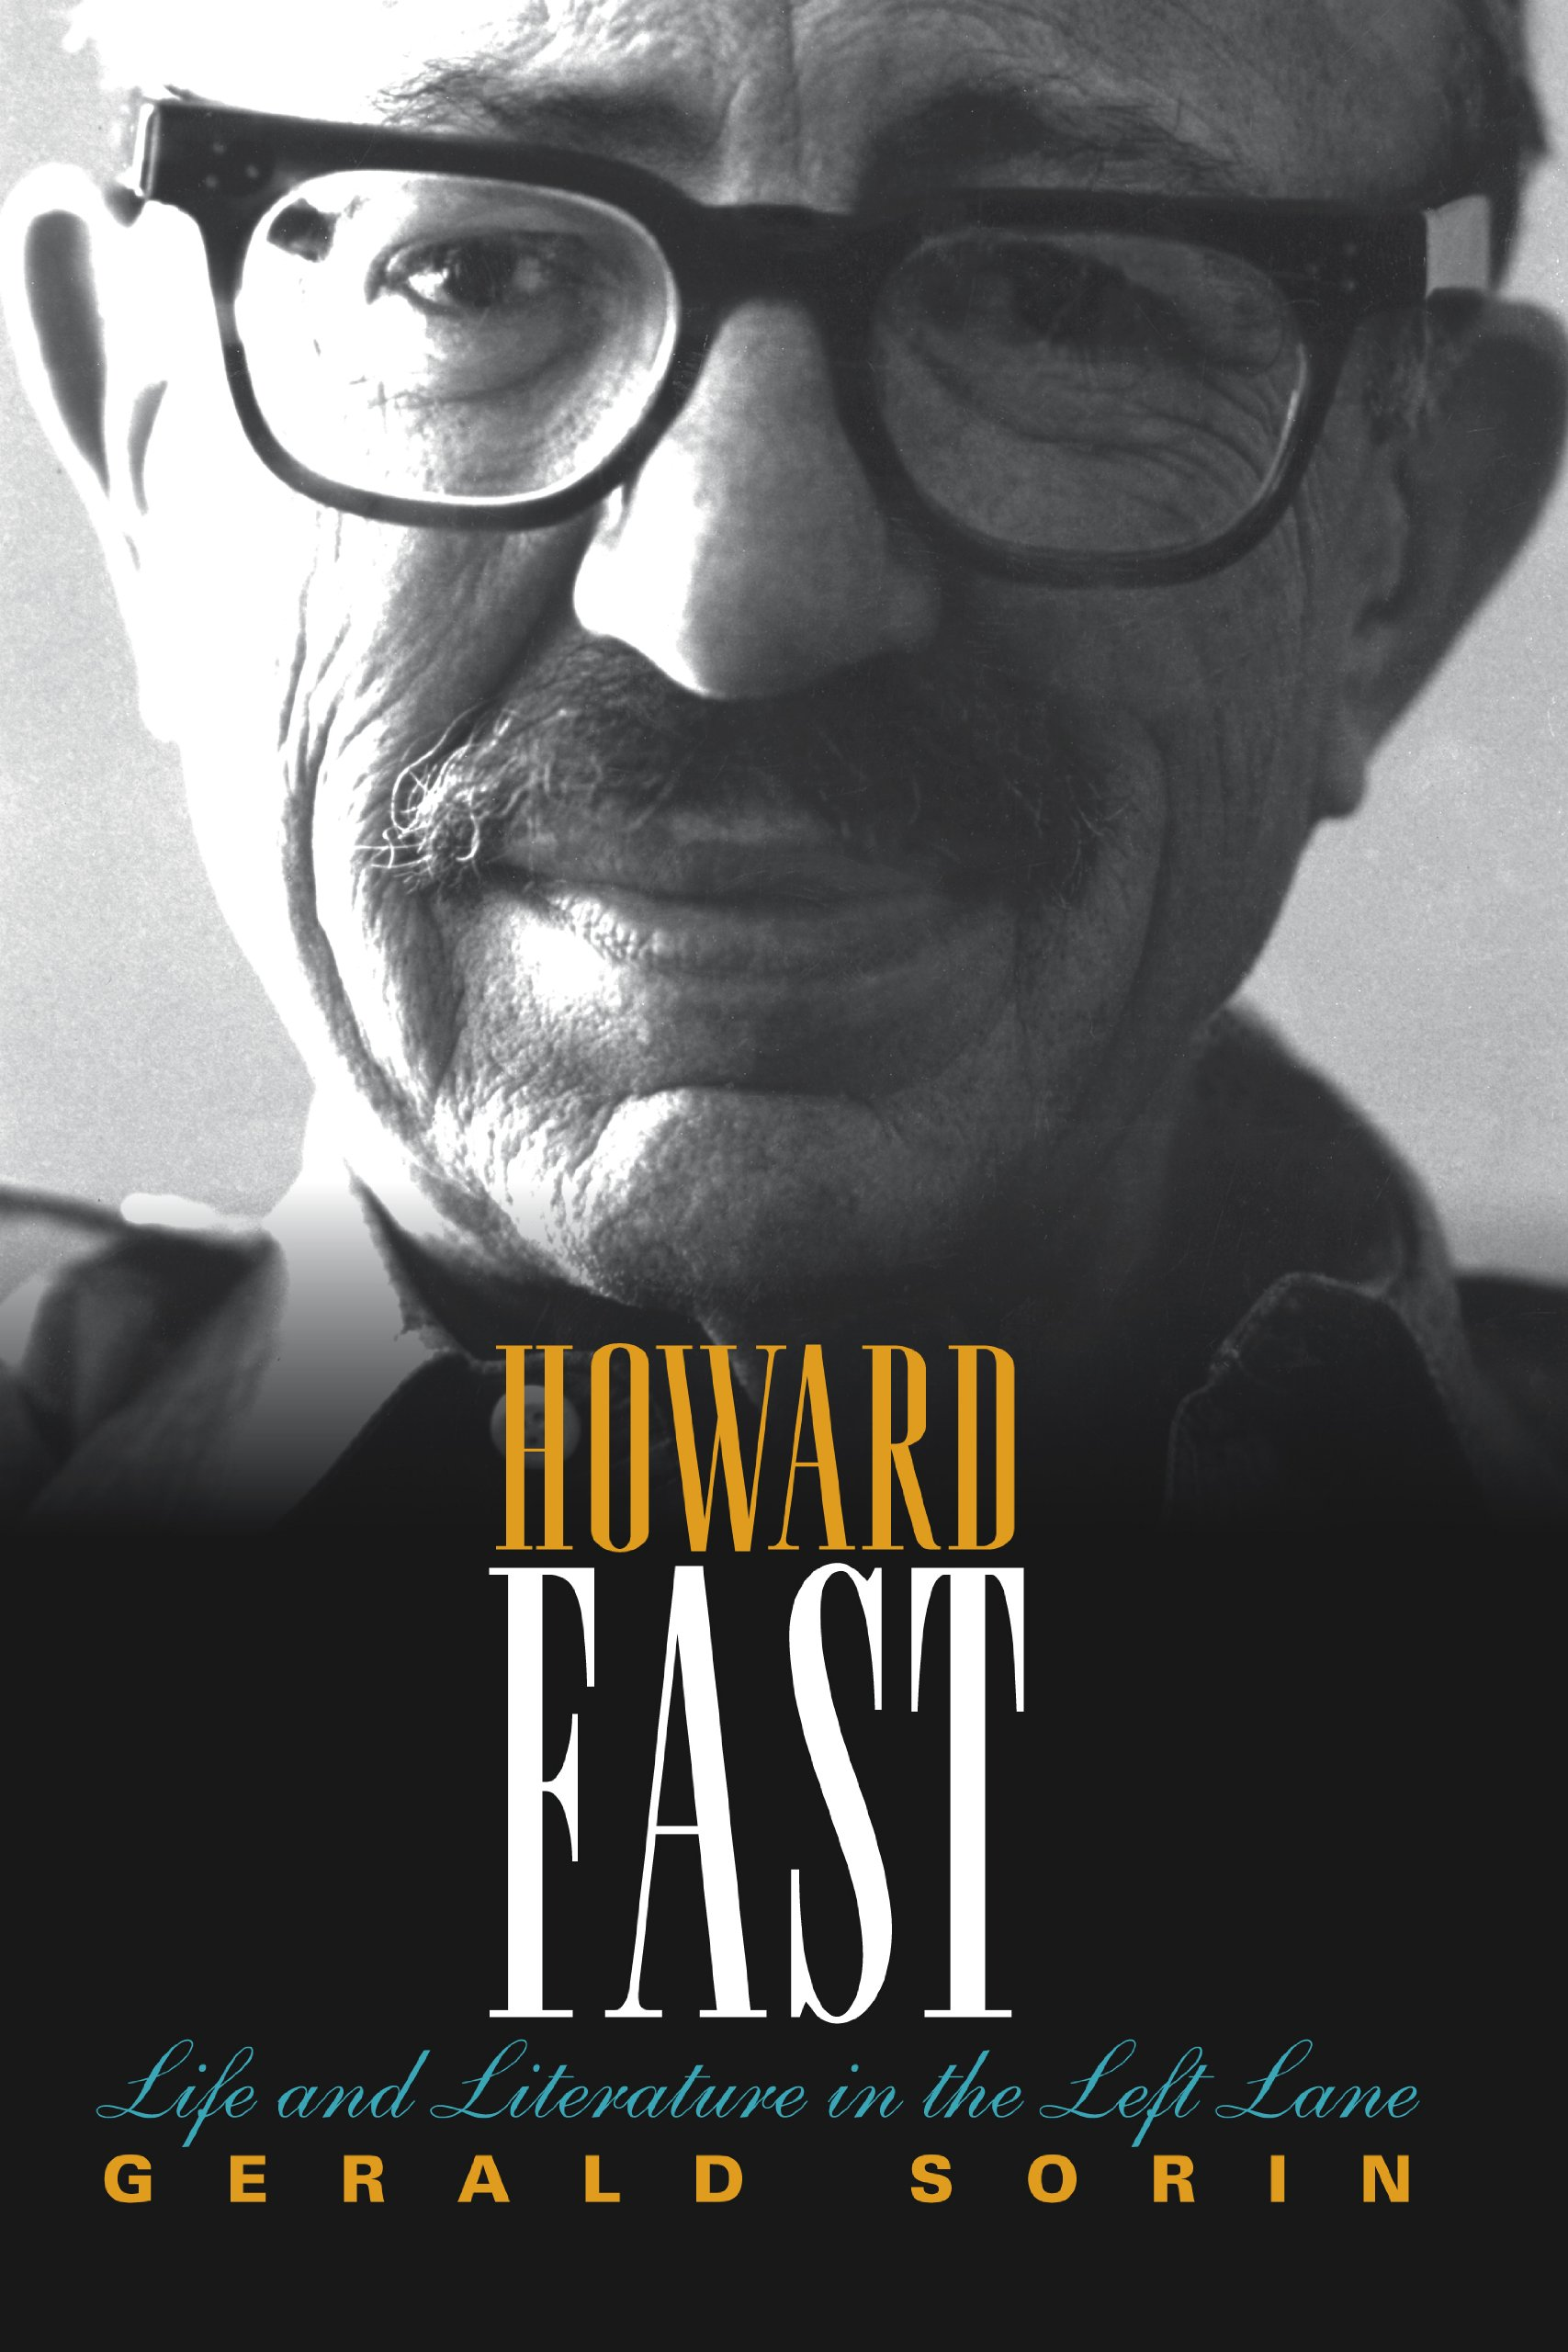 Howard Fast: Life and Literature in the Left Lane (The Modern Jewish Experience) PDF